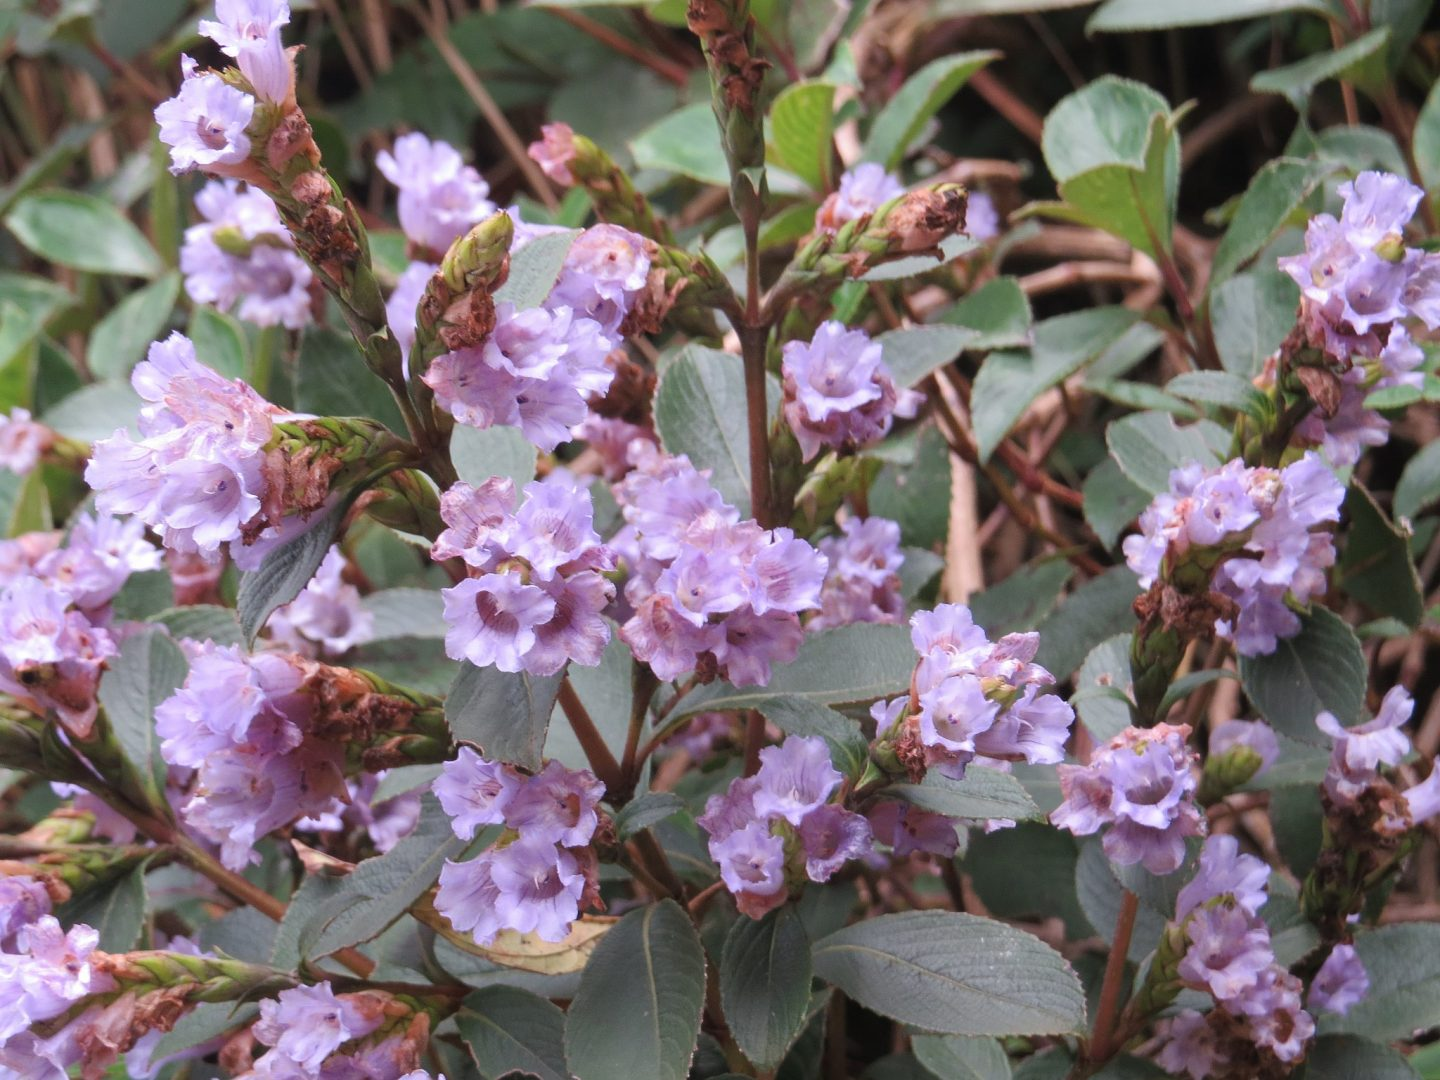 Neelakurinji blooming in 2018